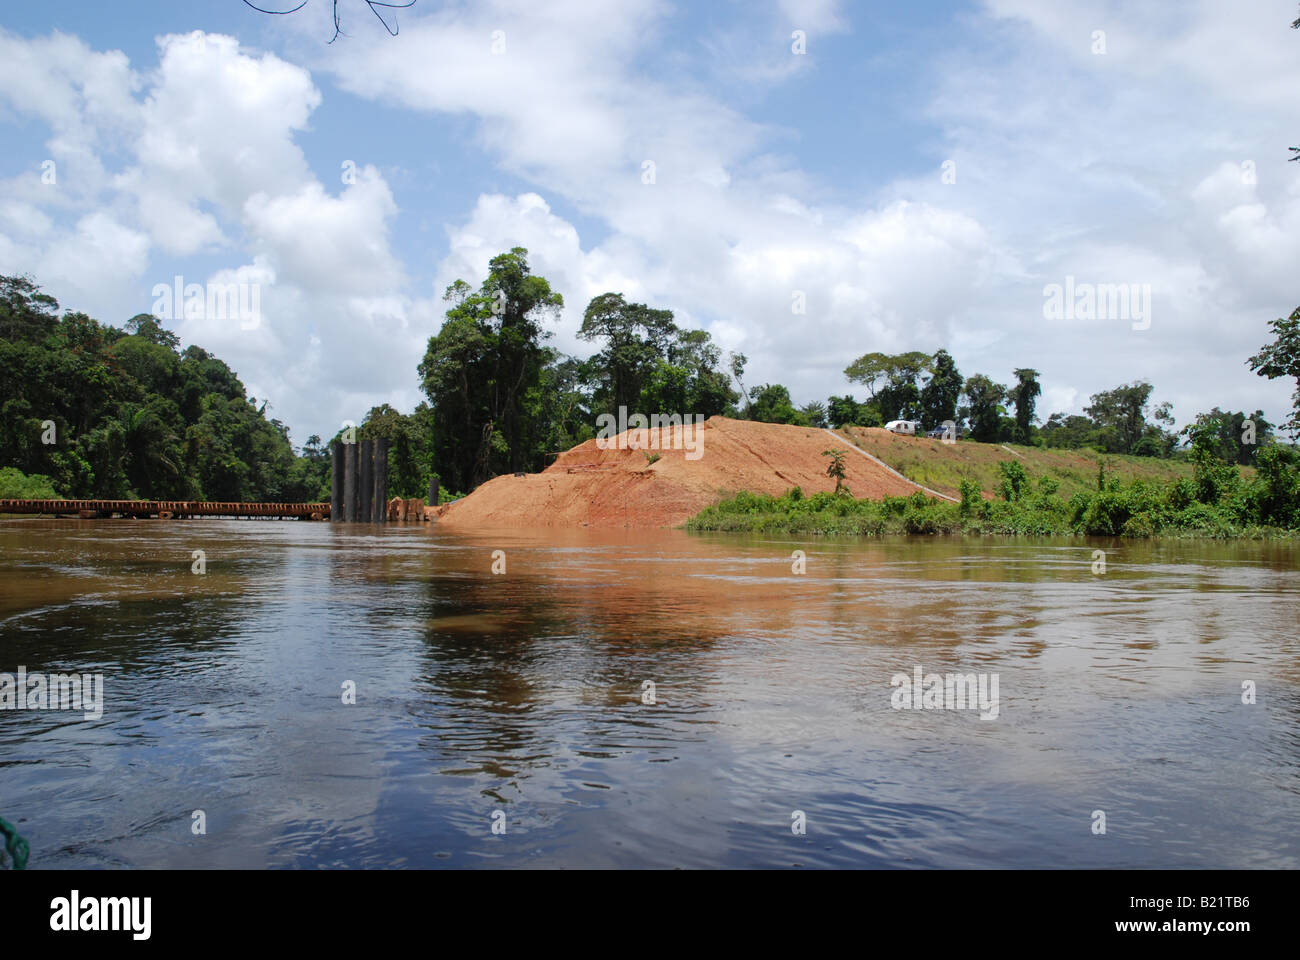 bridge building construction site on Sparouine river in french Guyana - Stock Image